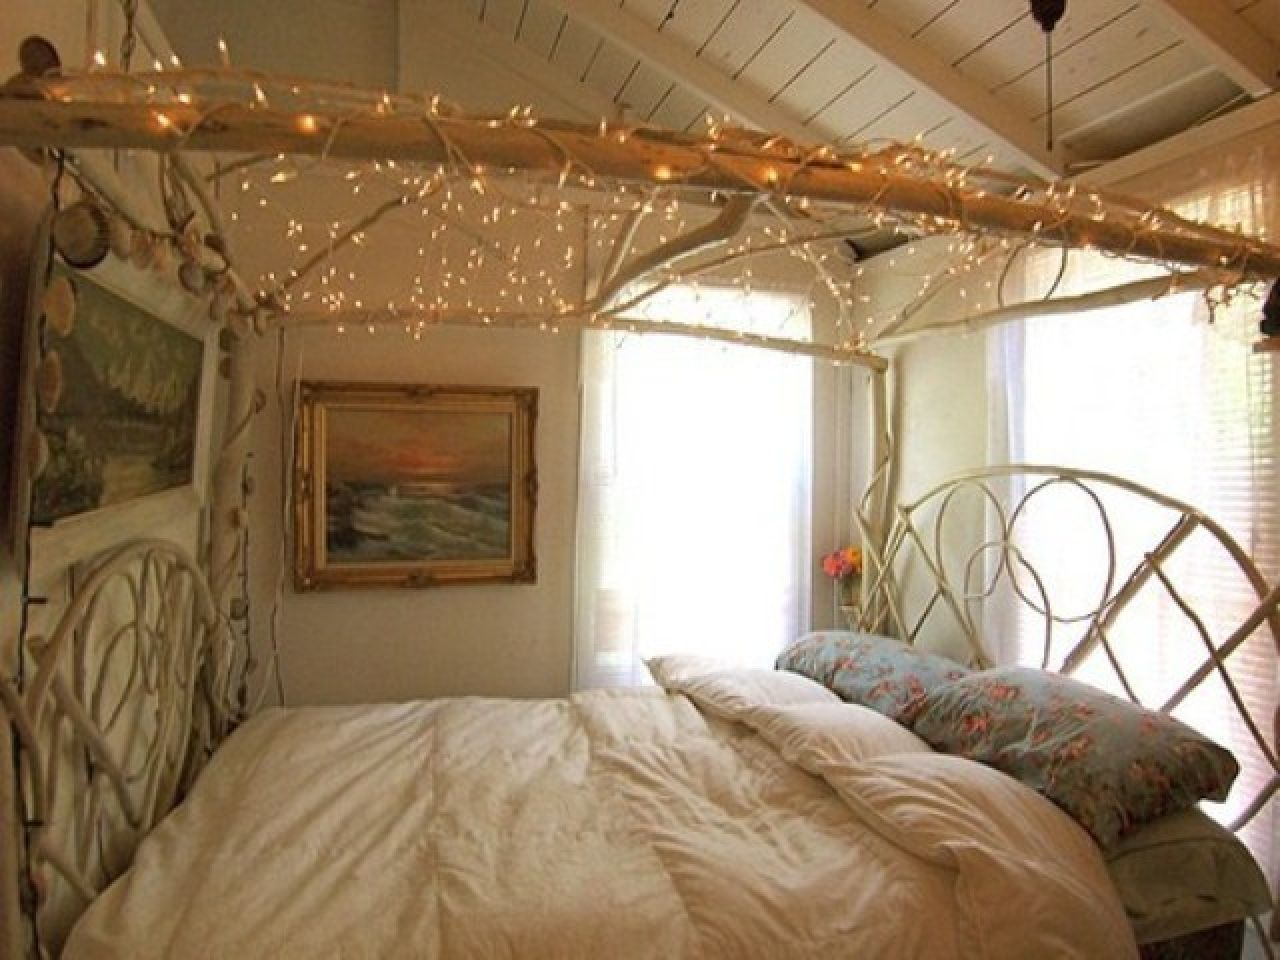 Fairy lights bedroom tumblr - Bedroom Fairy Lights Tumblr Fairy Lights Bedroom Piece Kitchen